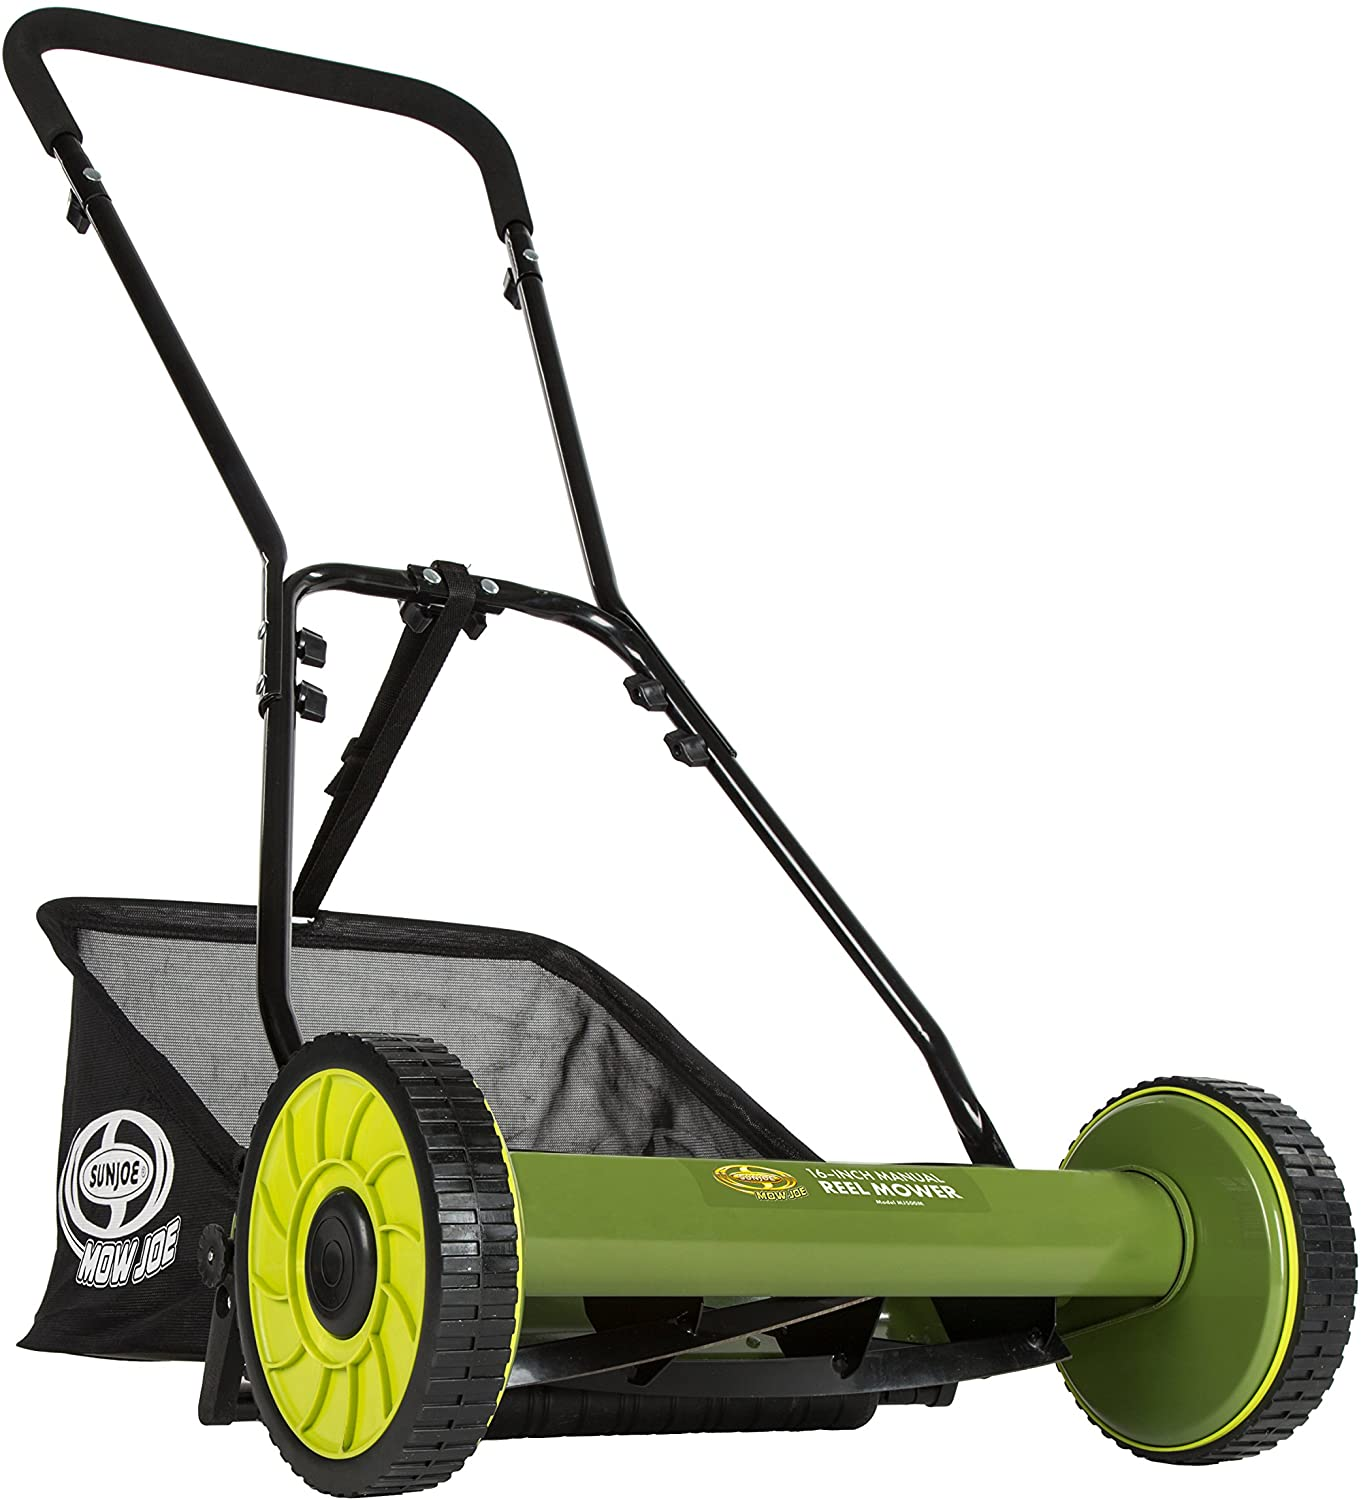 Snow Joe MJ500M 16 inch Manual Reel Mower